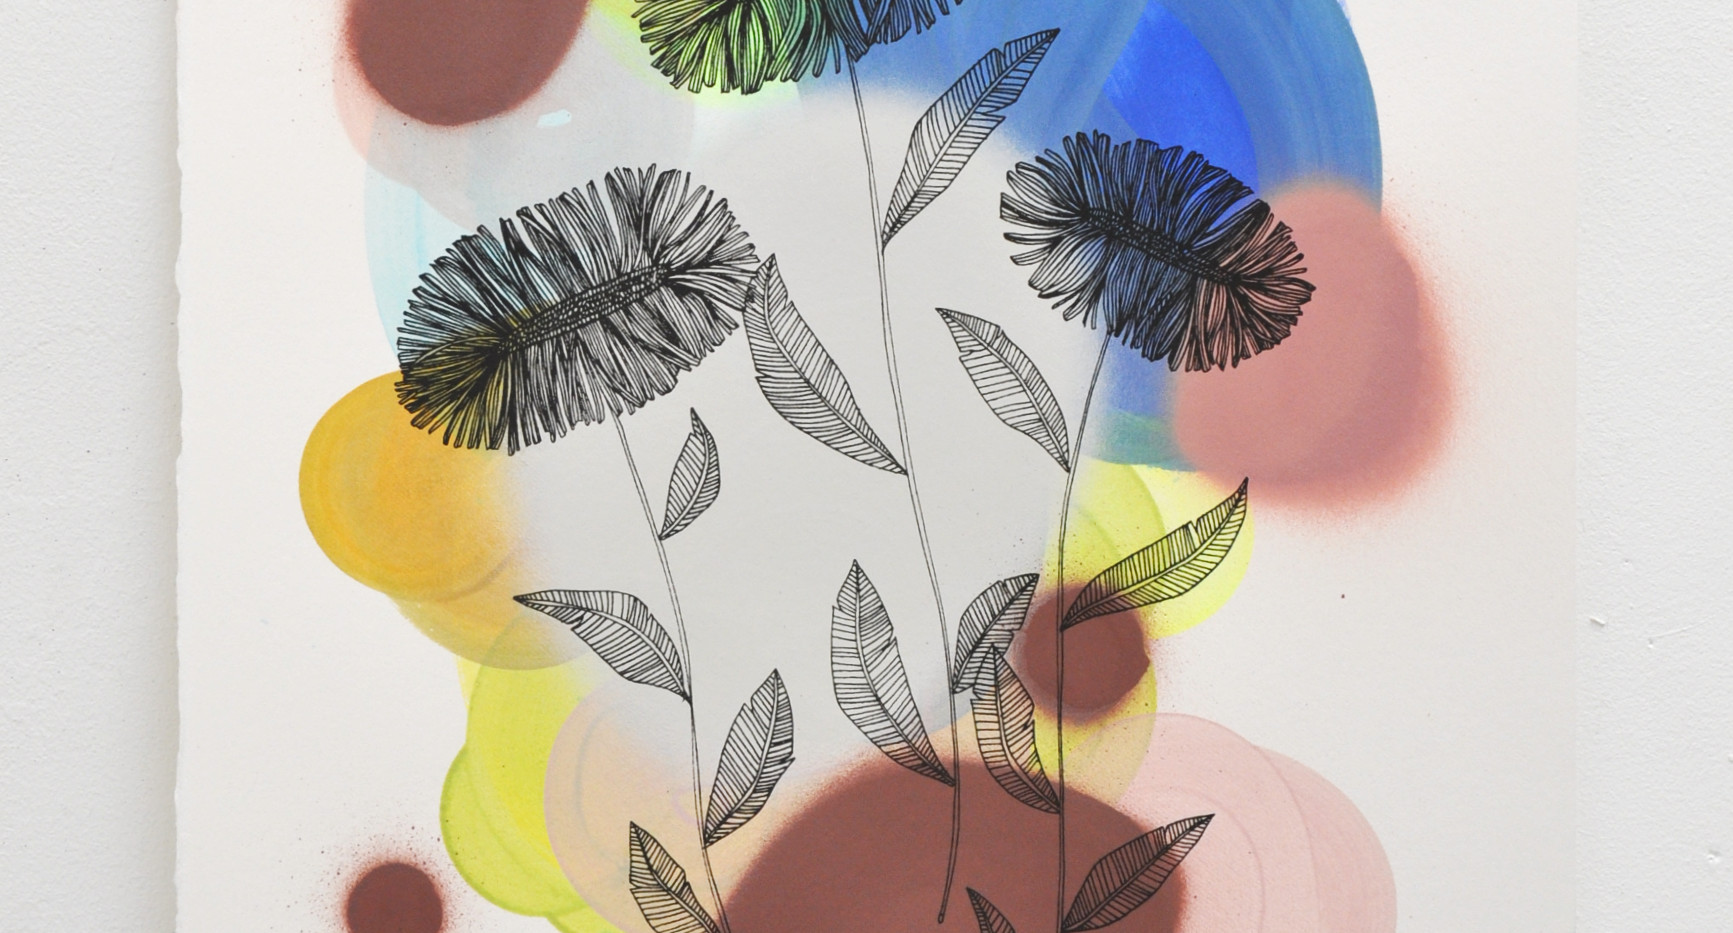 Daisies edition no. 7 of 30, silk screen print on hand painted background, 50 x 35cm